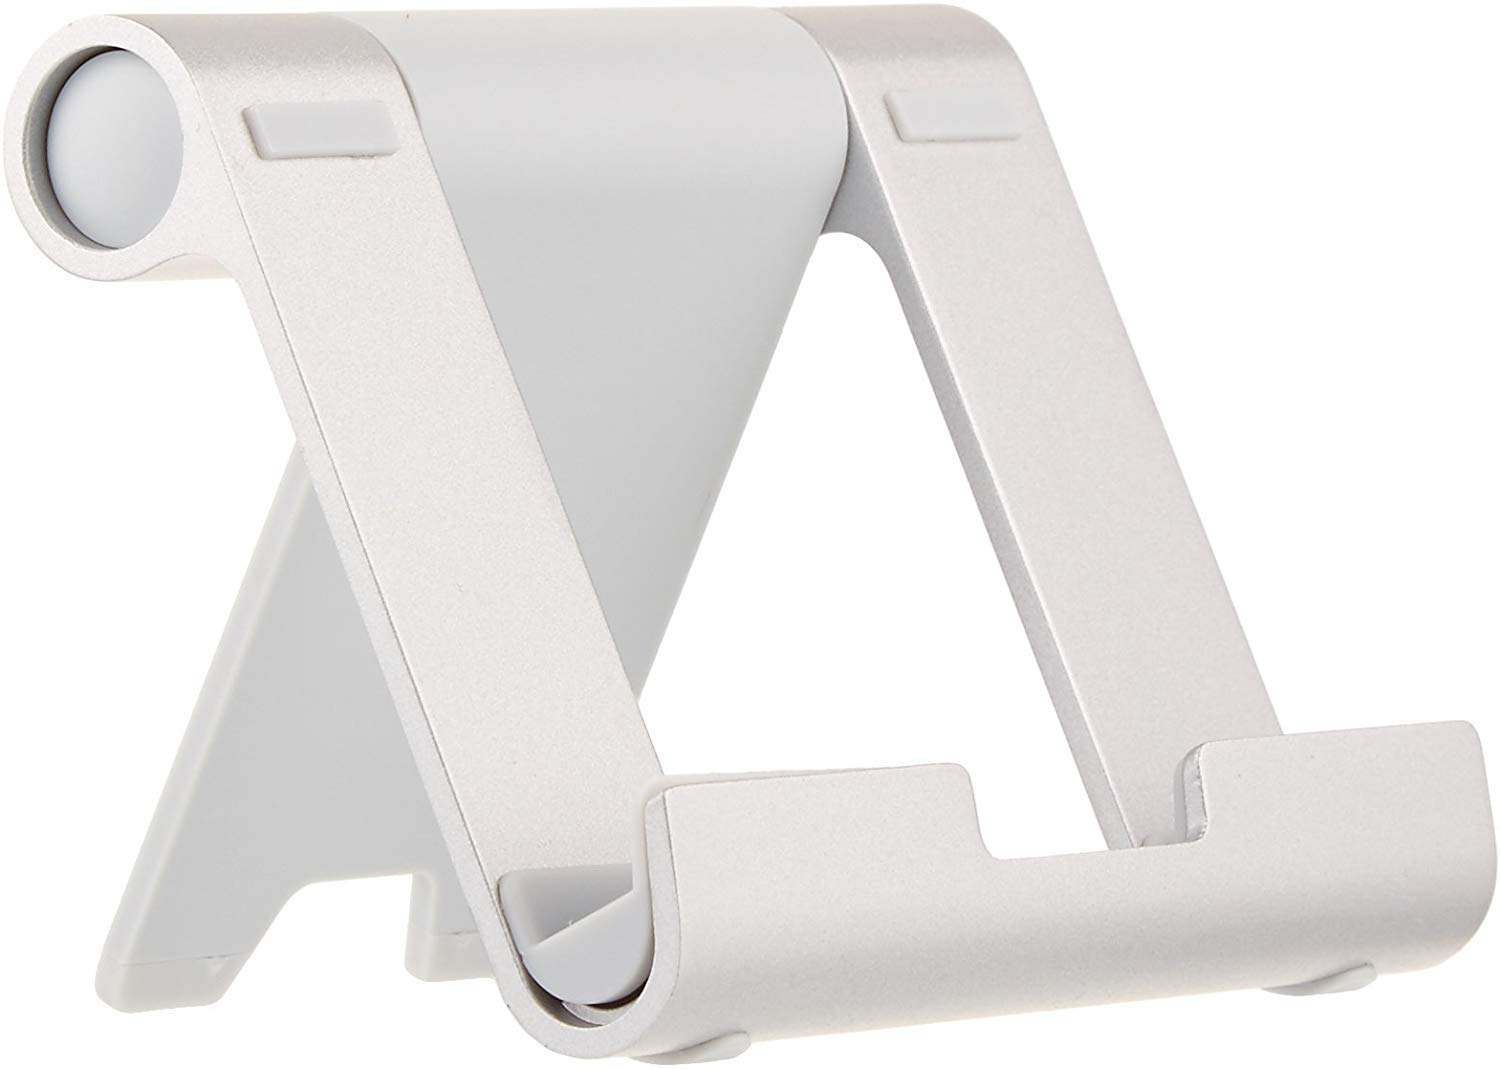 AmazonBasics Multi-Angle Portable Stand for Mobile Phones, Tablets and E-readers, Silver product image